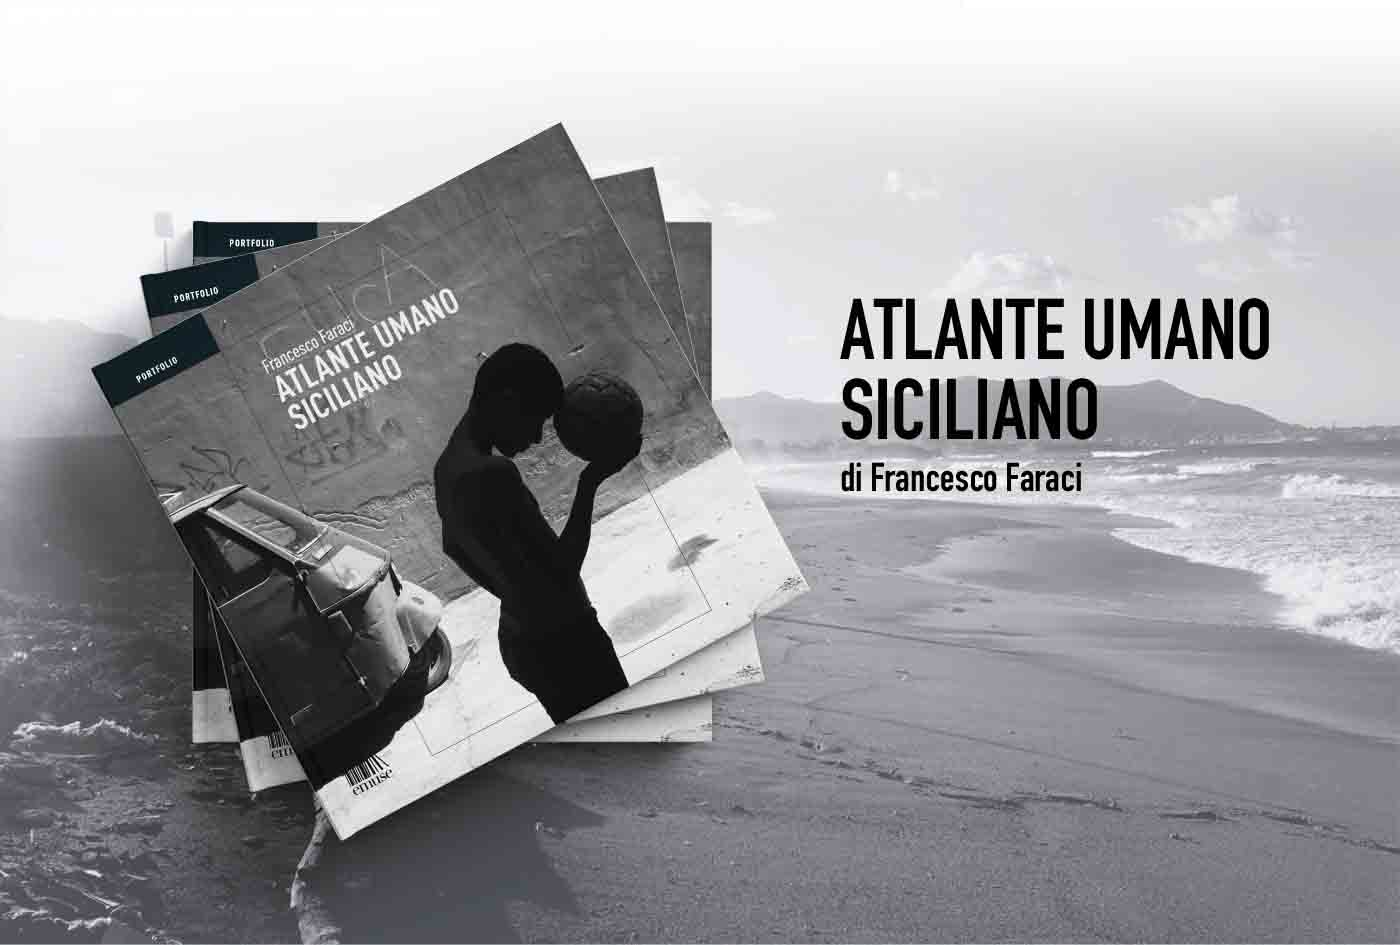 francesco faraci - atlante umano siciliano